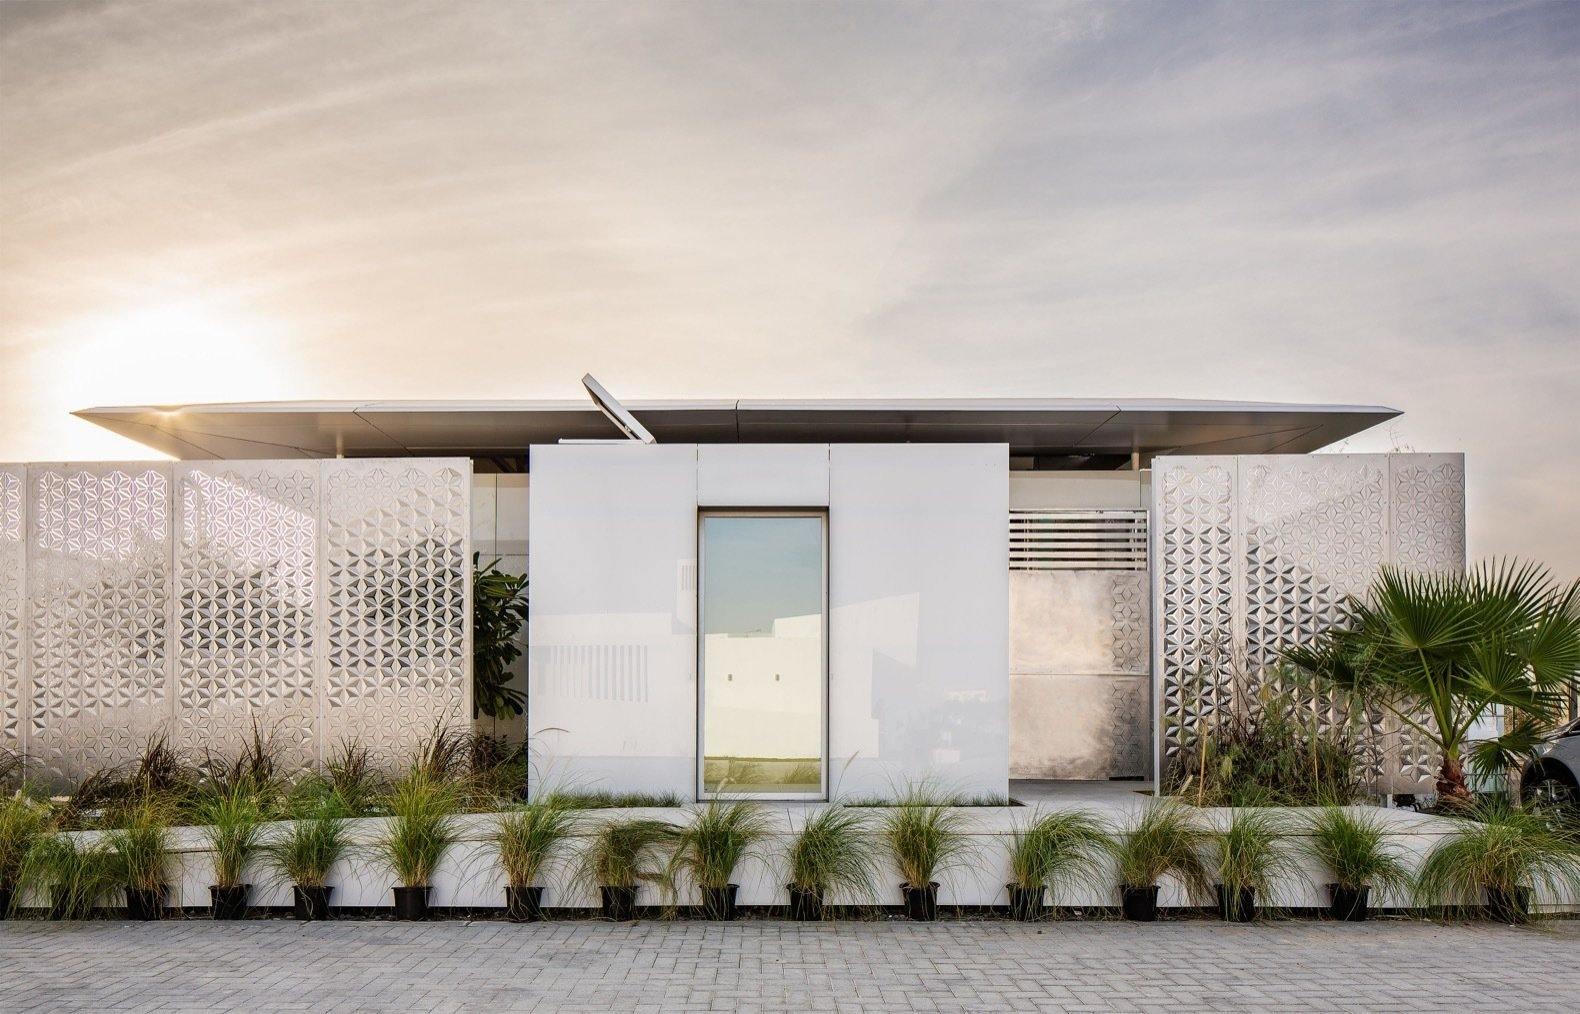 Prefab Homes: Design and ideas for modern living